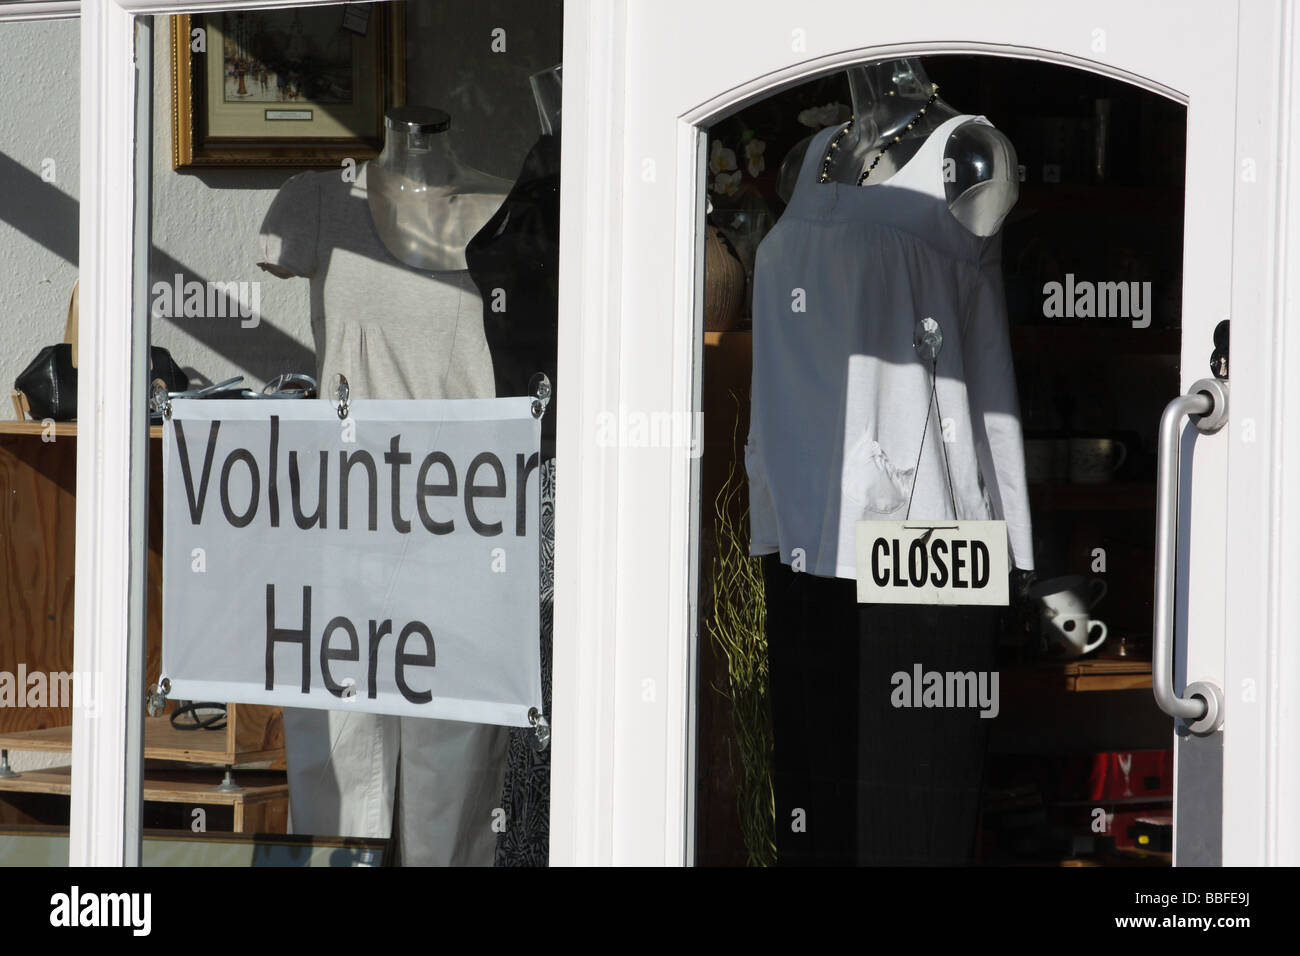 A charity shop in a U.K. city. - Stock Image